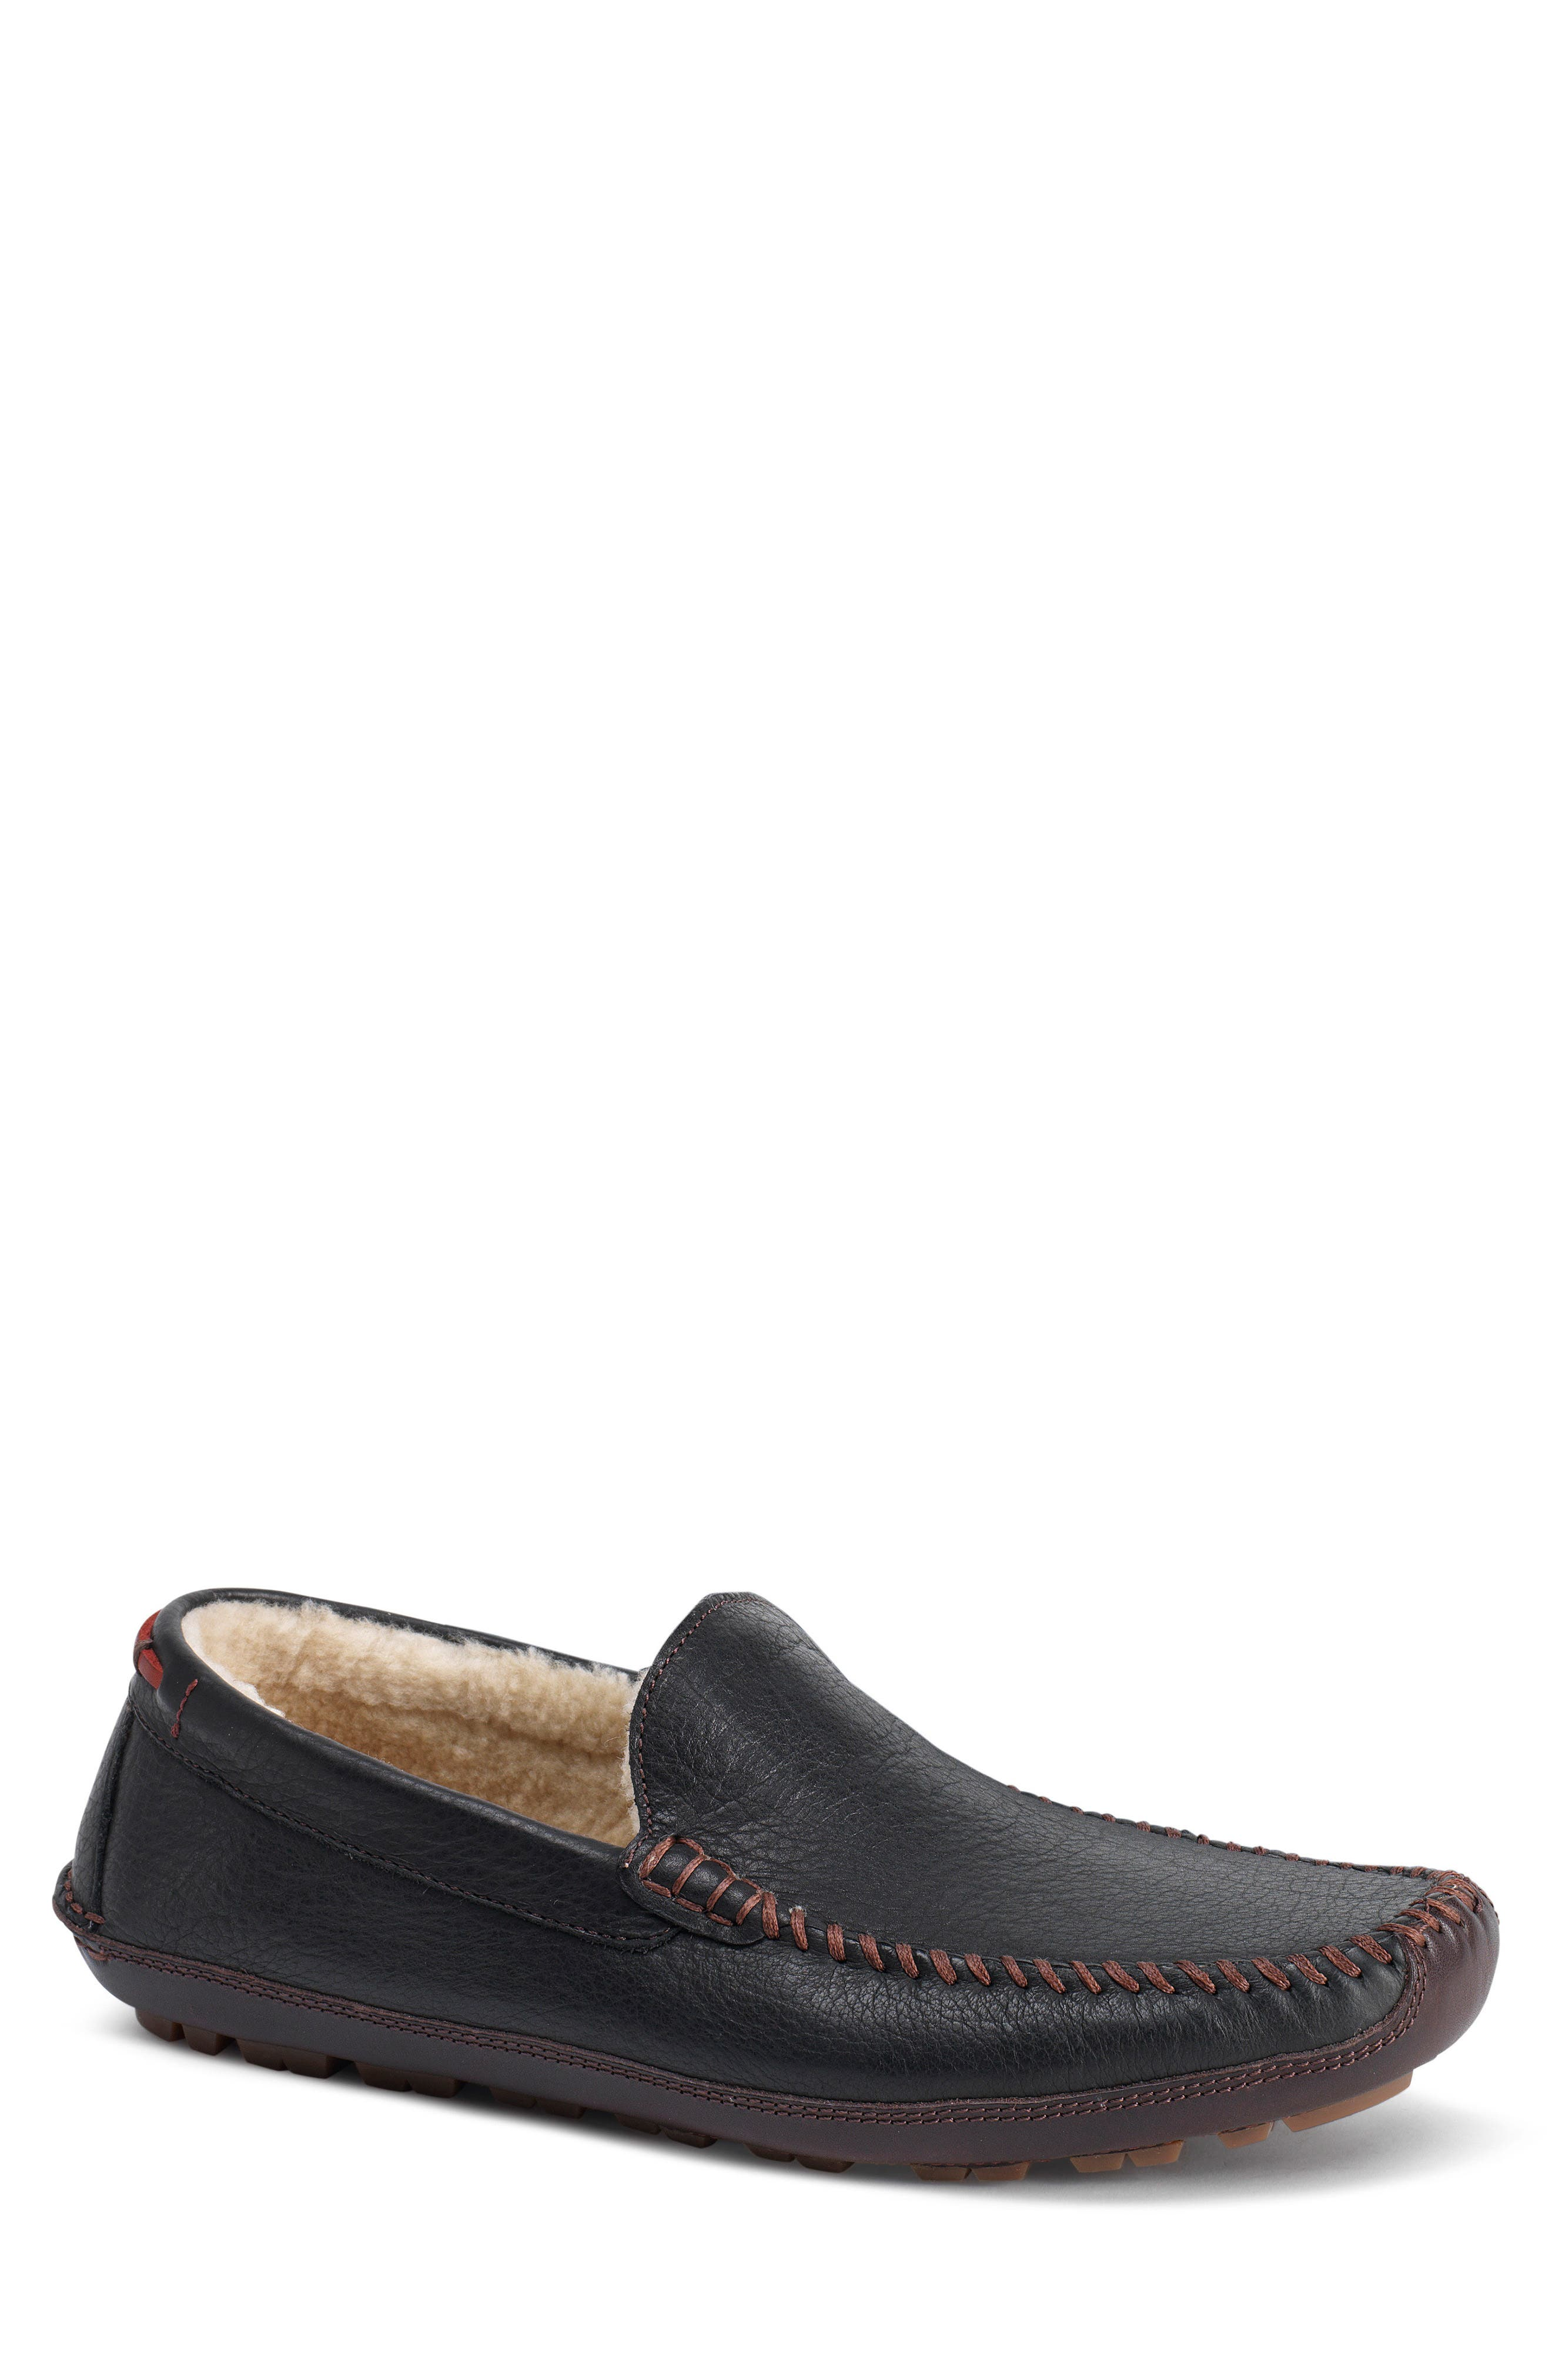 TRASK, Denton Driving Shoe with Genuine Shearling, Main thumbnail 1, color, BLACK LEATHER/ SHEARLING